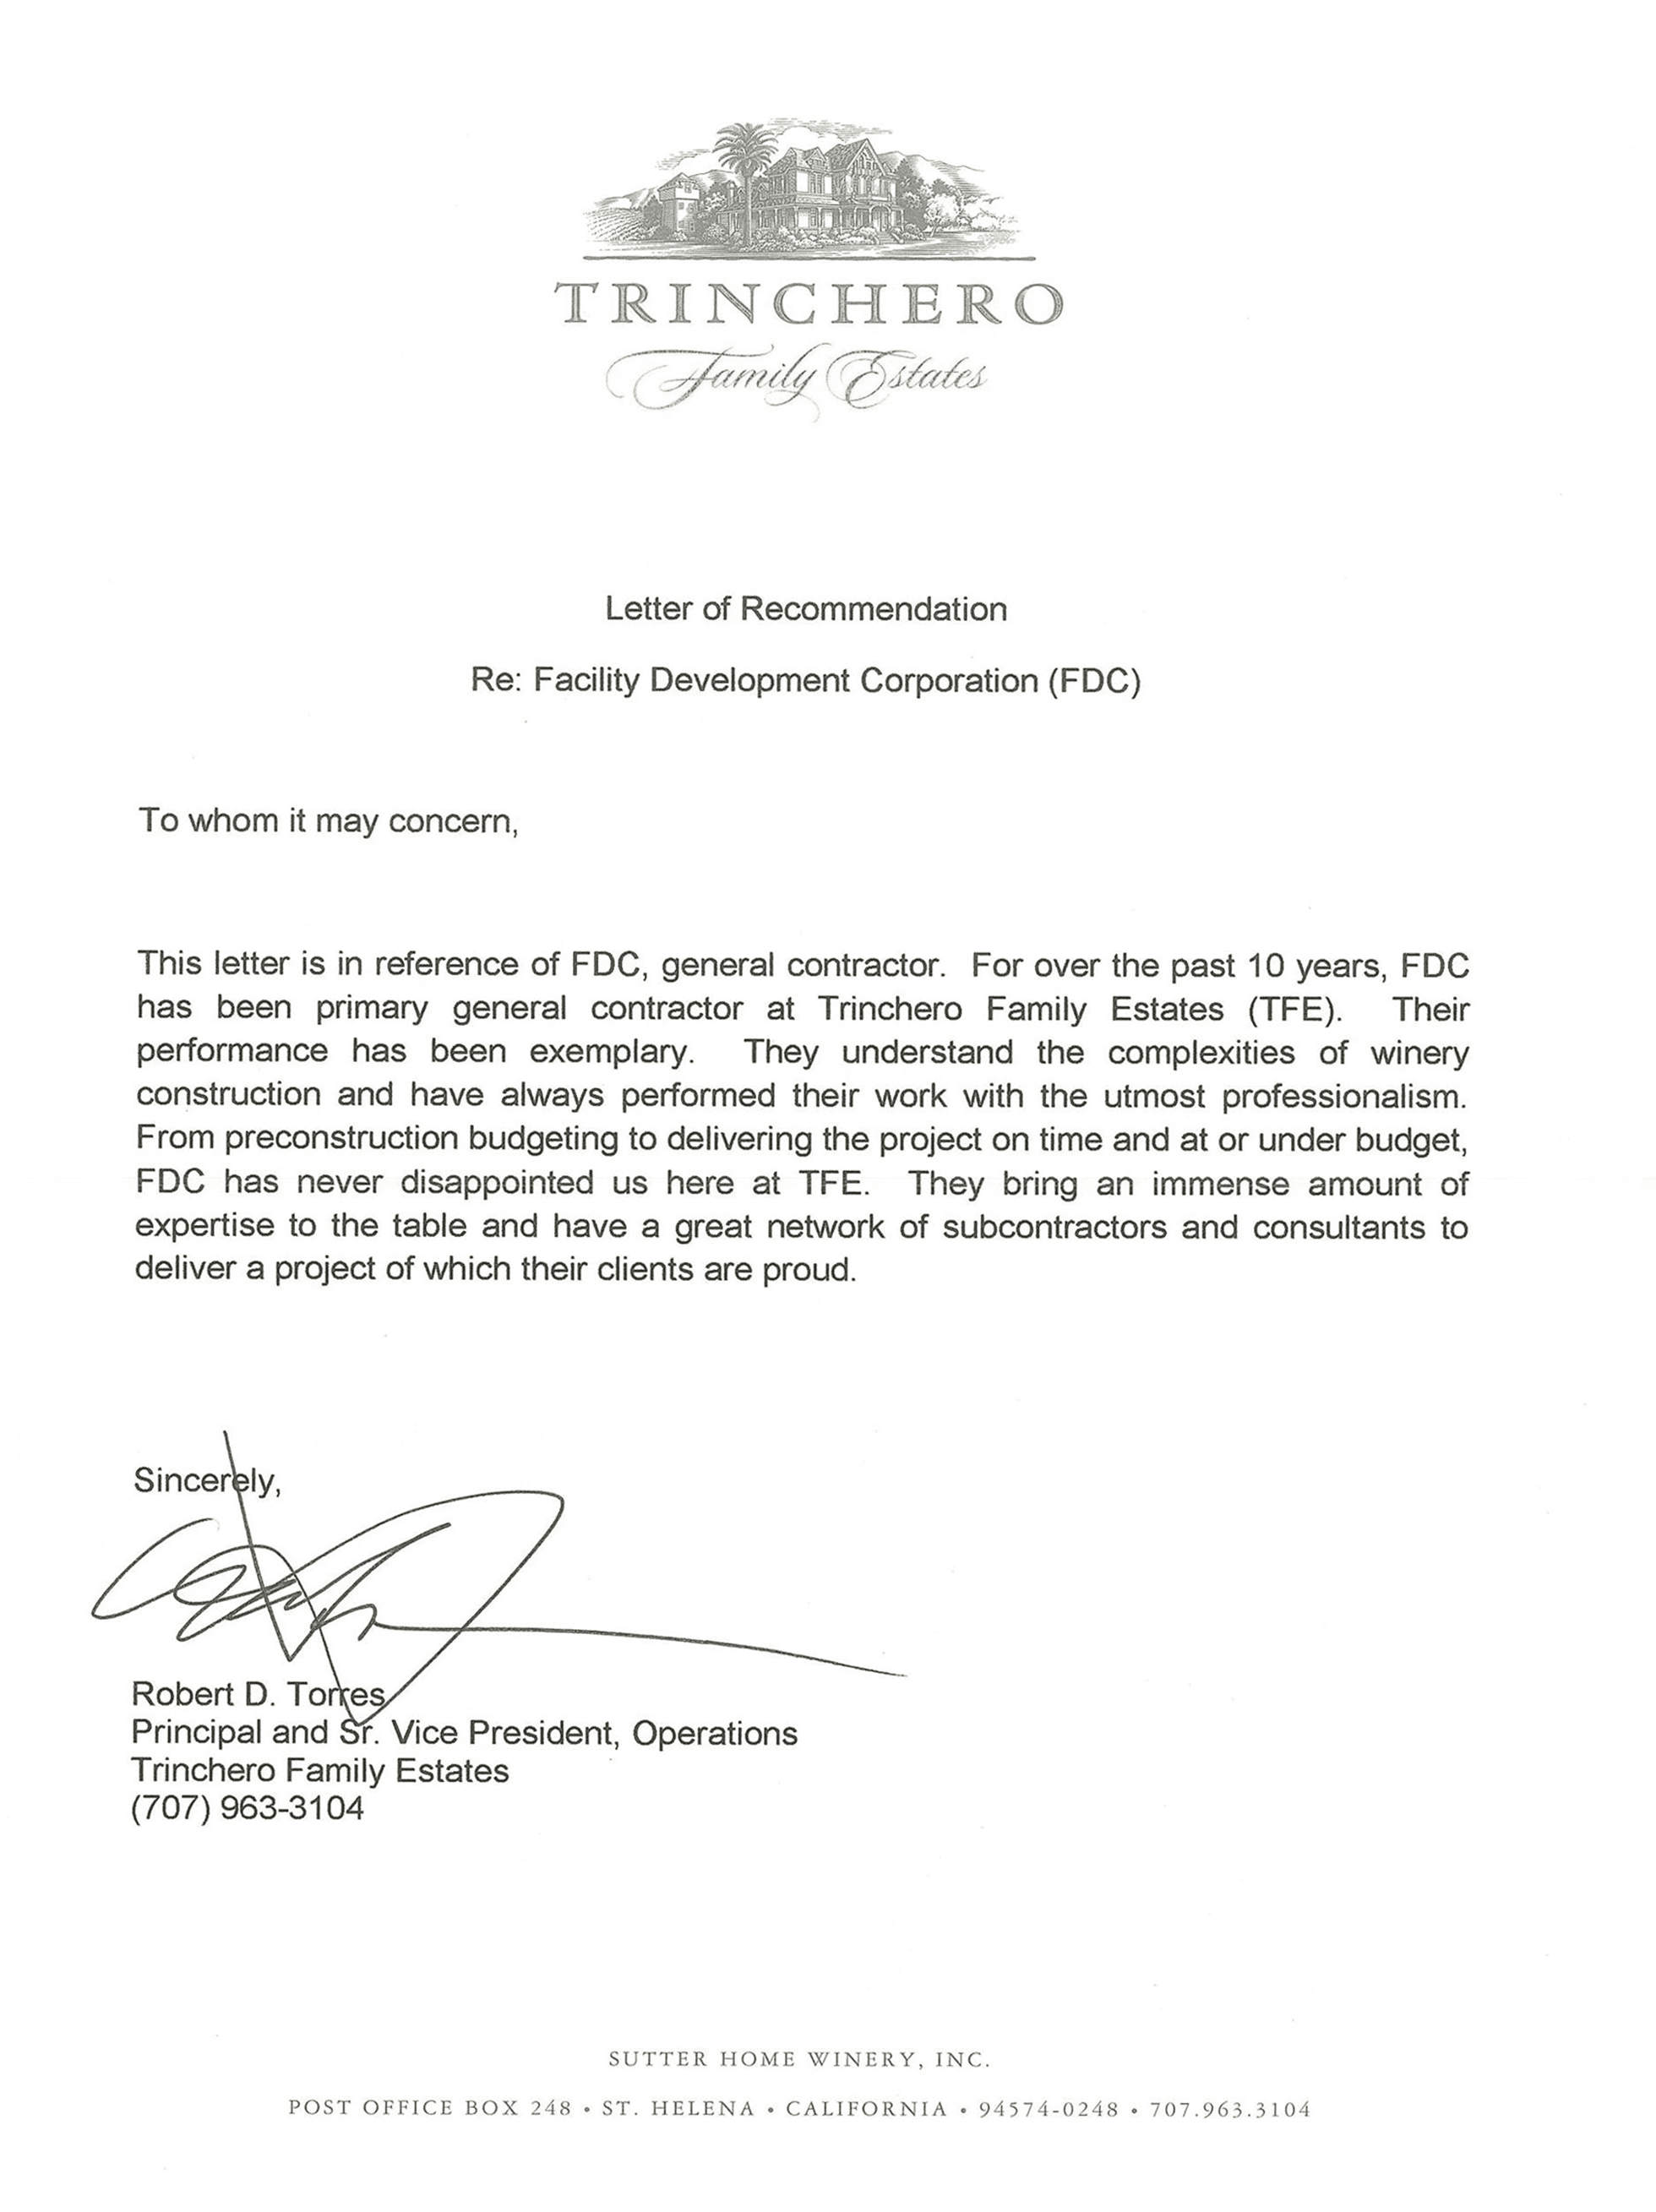 Letter of recommendation for Facility Development Company